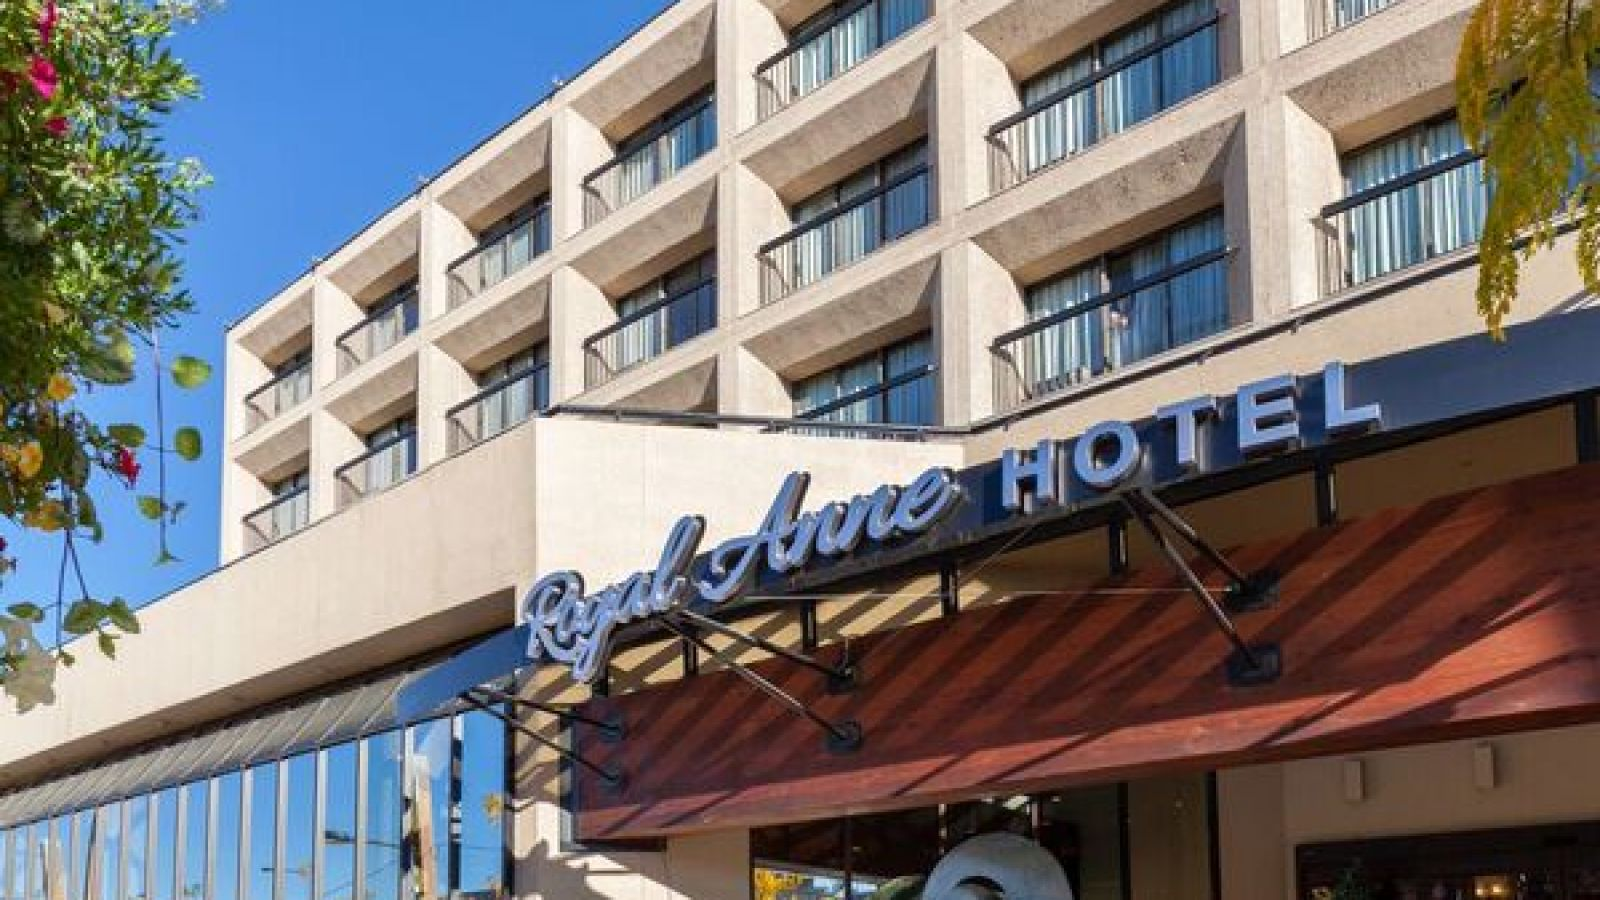 Royal Anne Hotel Kelowna - Front view after renovations